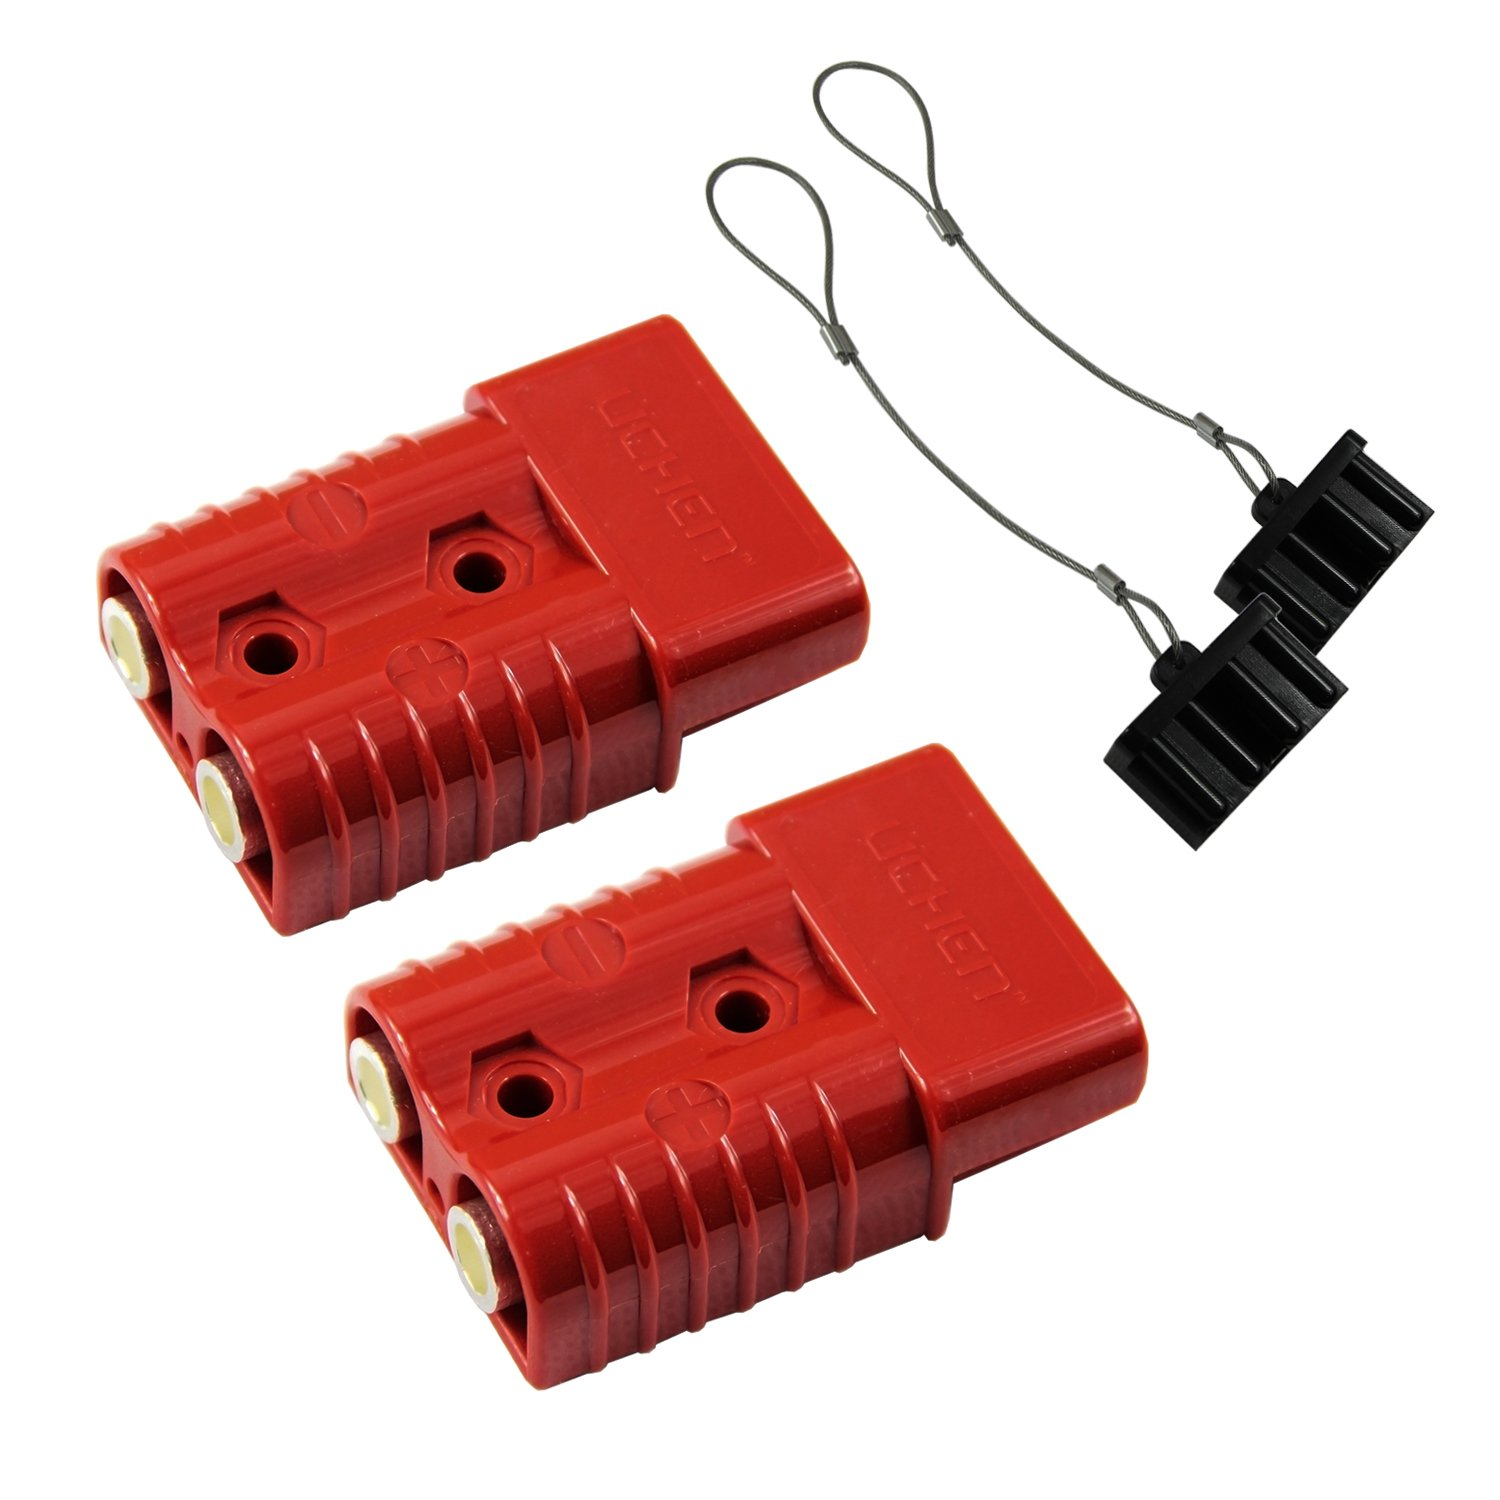 HYCLAT 2-4 Gauge 175 A Battery Quick Connect/Disconnect Wire Harness Plug Connector Recovery Winch Trailer